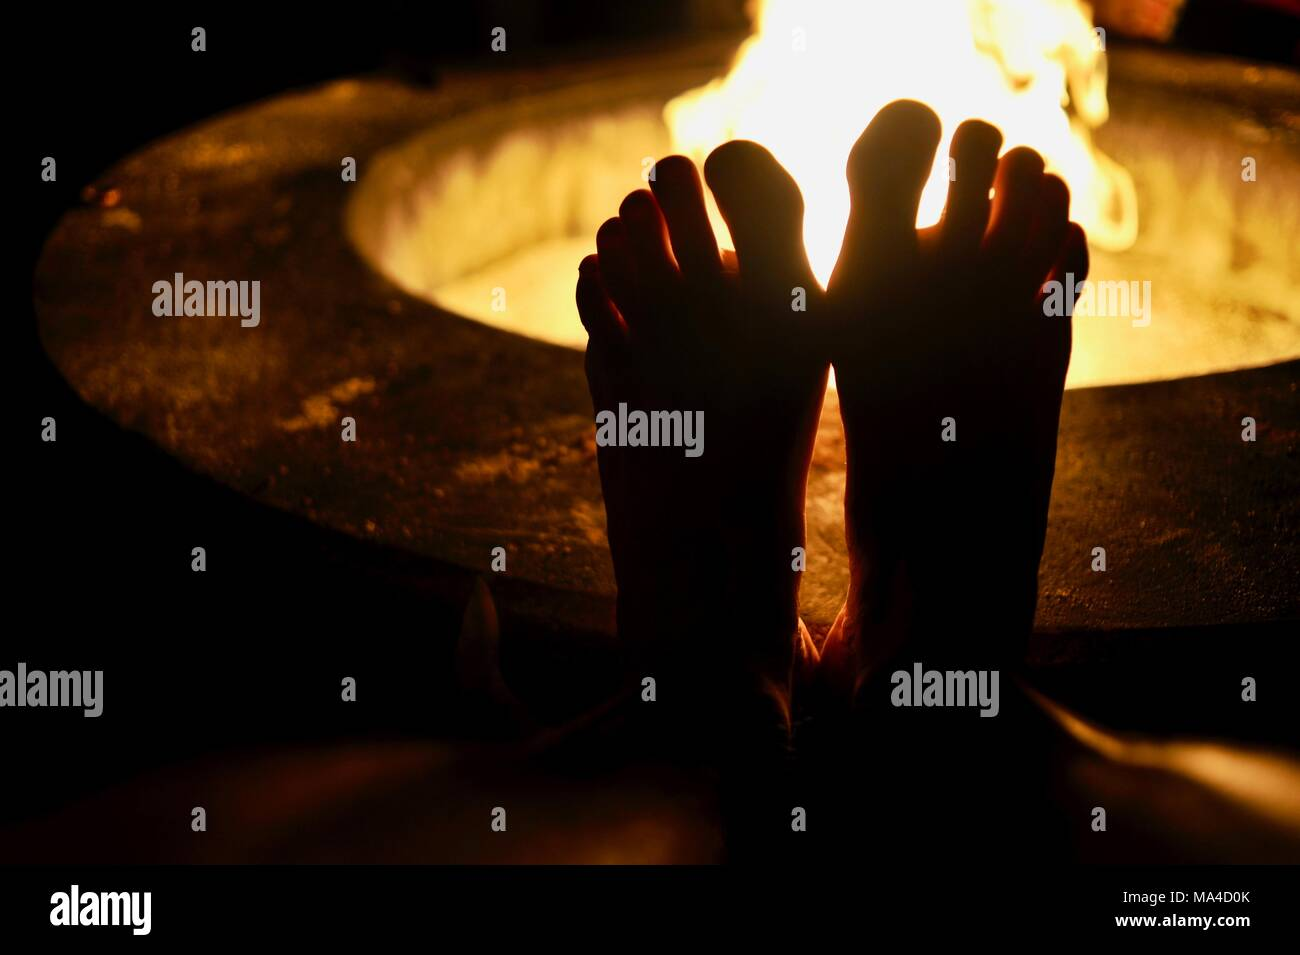 Man resting his bare feet on the cement fire pit ring with flickering flames in outdoor fire pit along pier in Florida Keys, USA - Stock Image